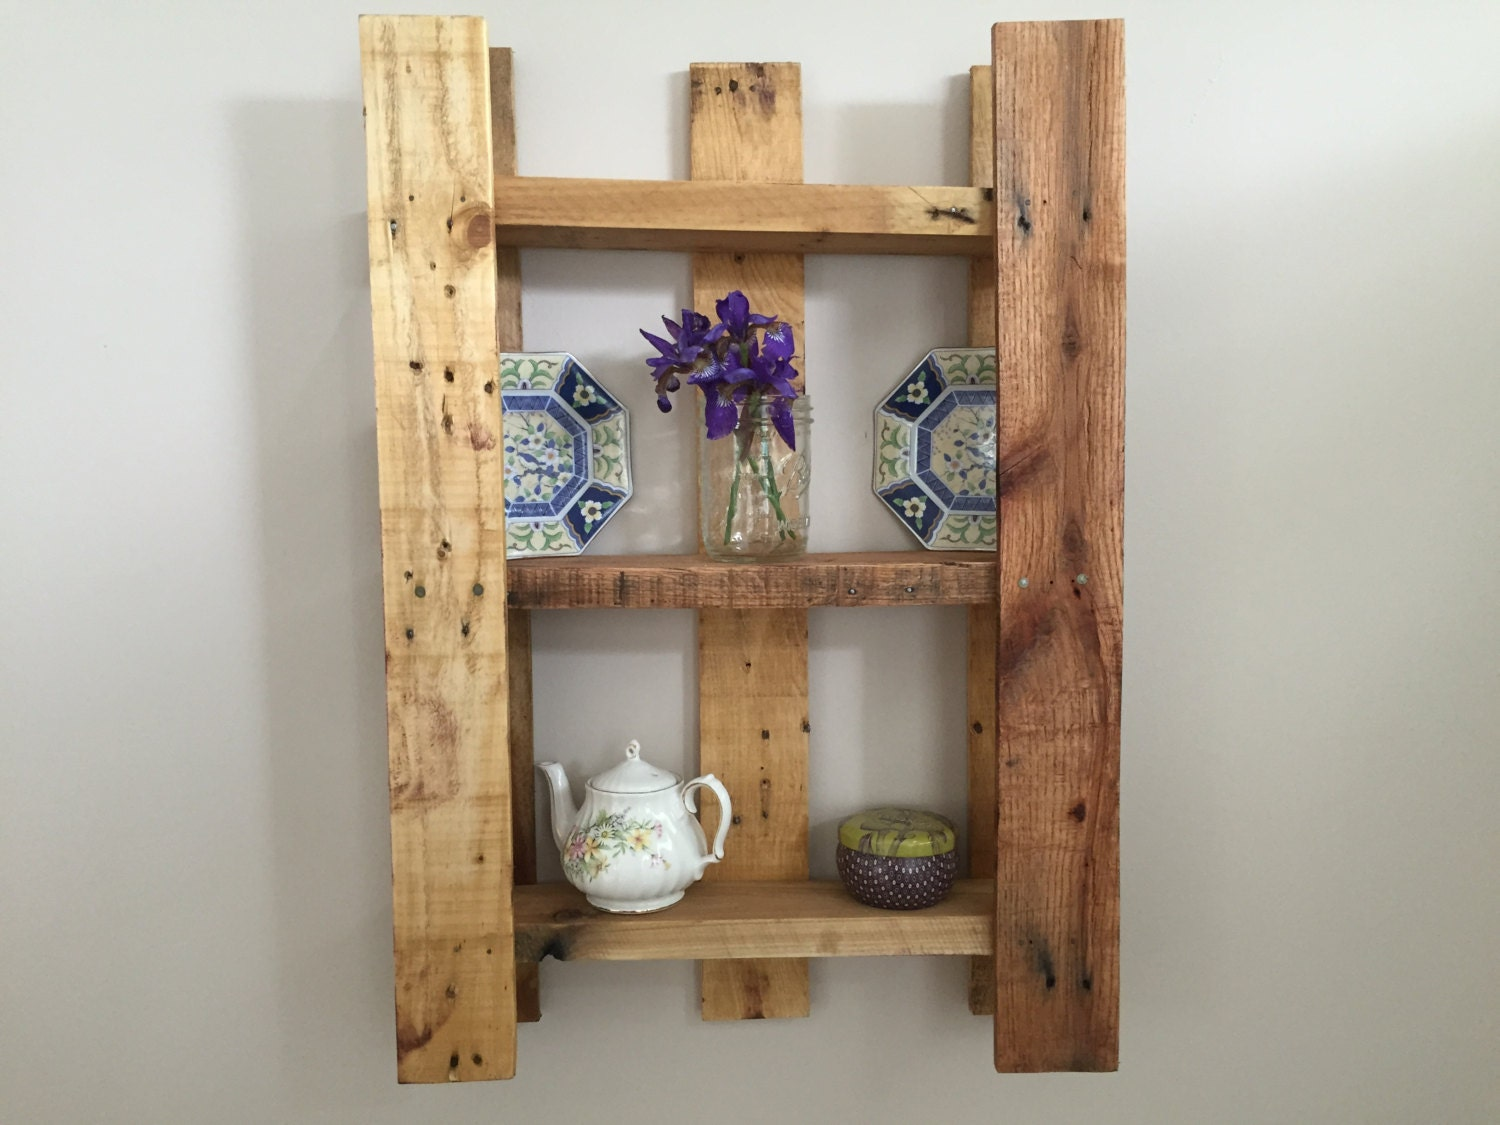 Wood Rustic Wall Shelf Wall Mounted Home Decor By